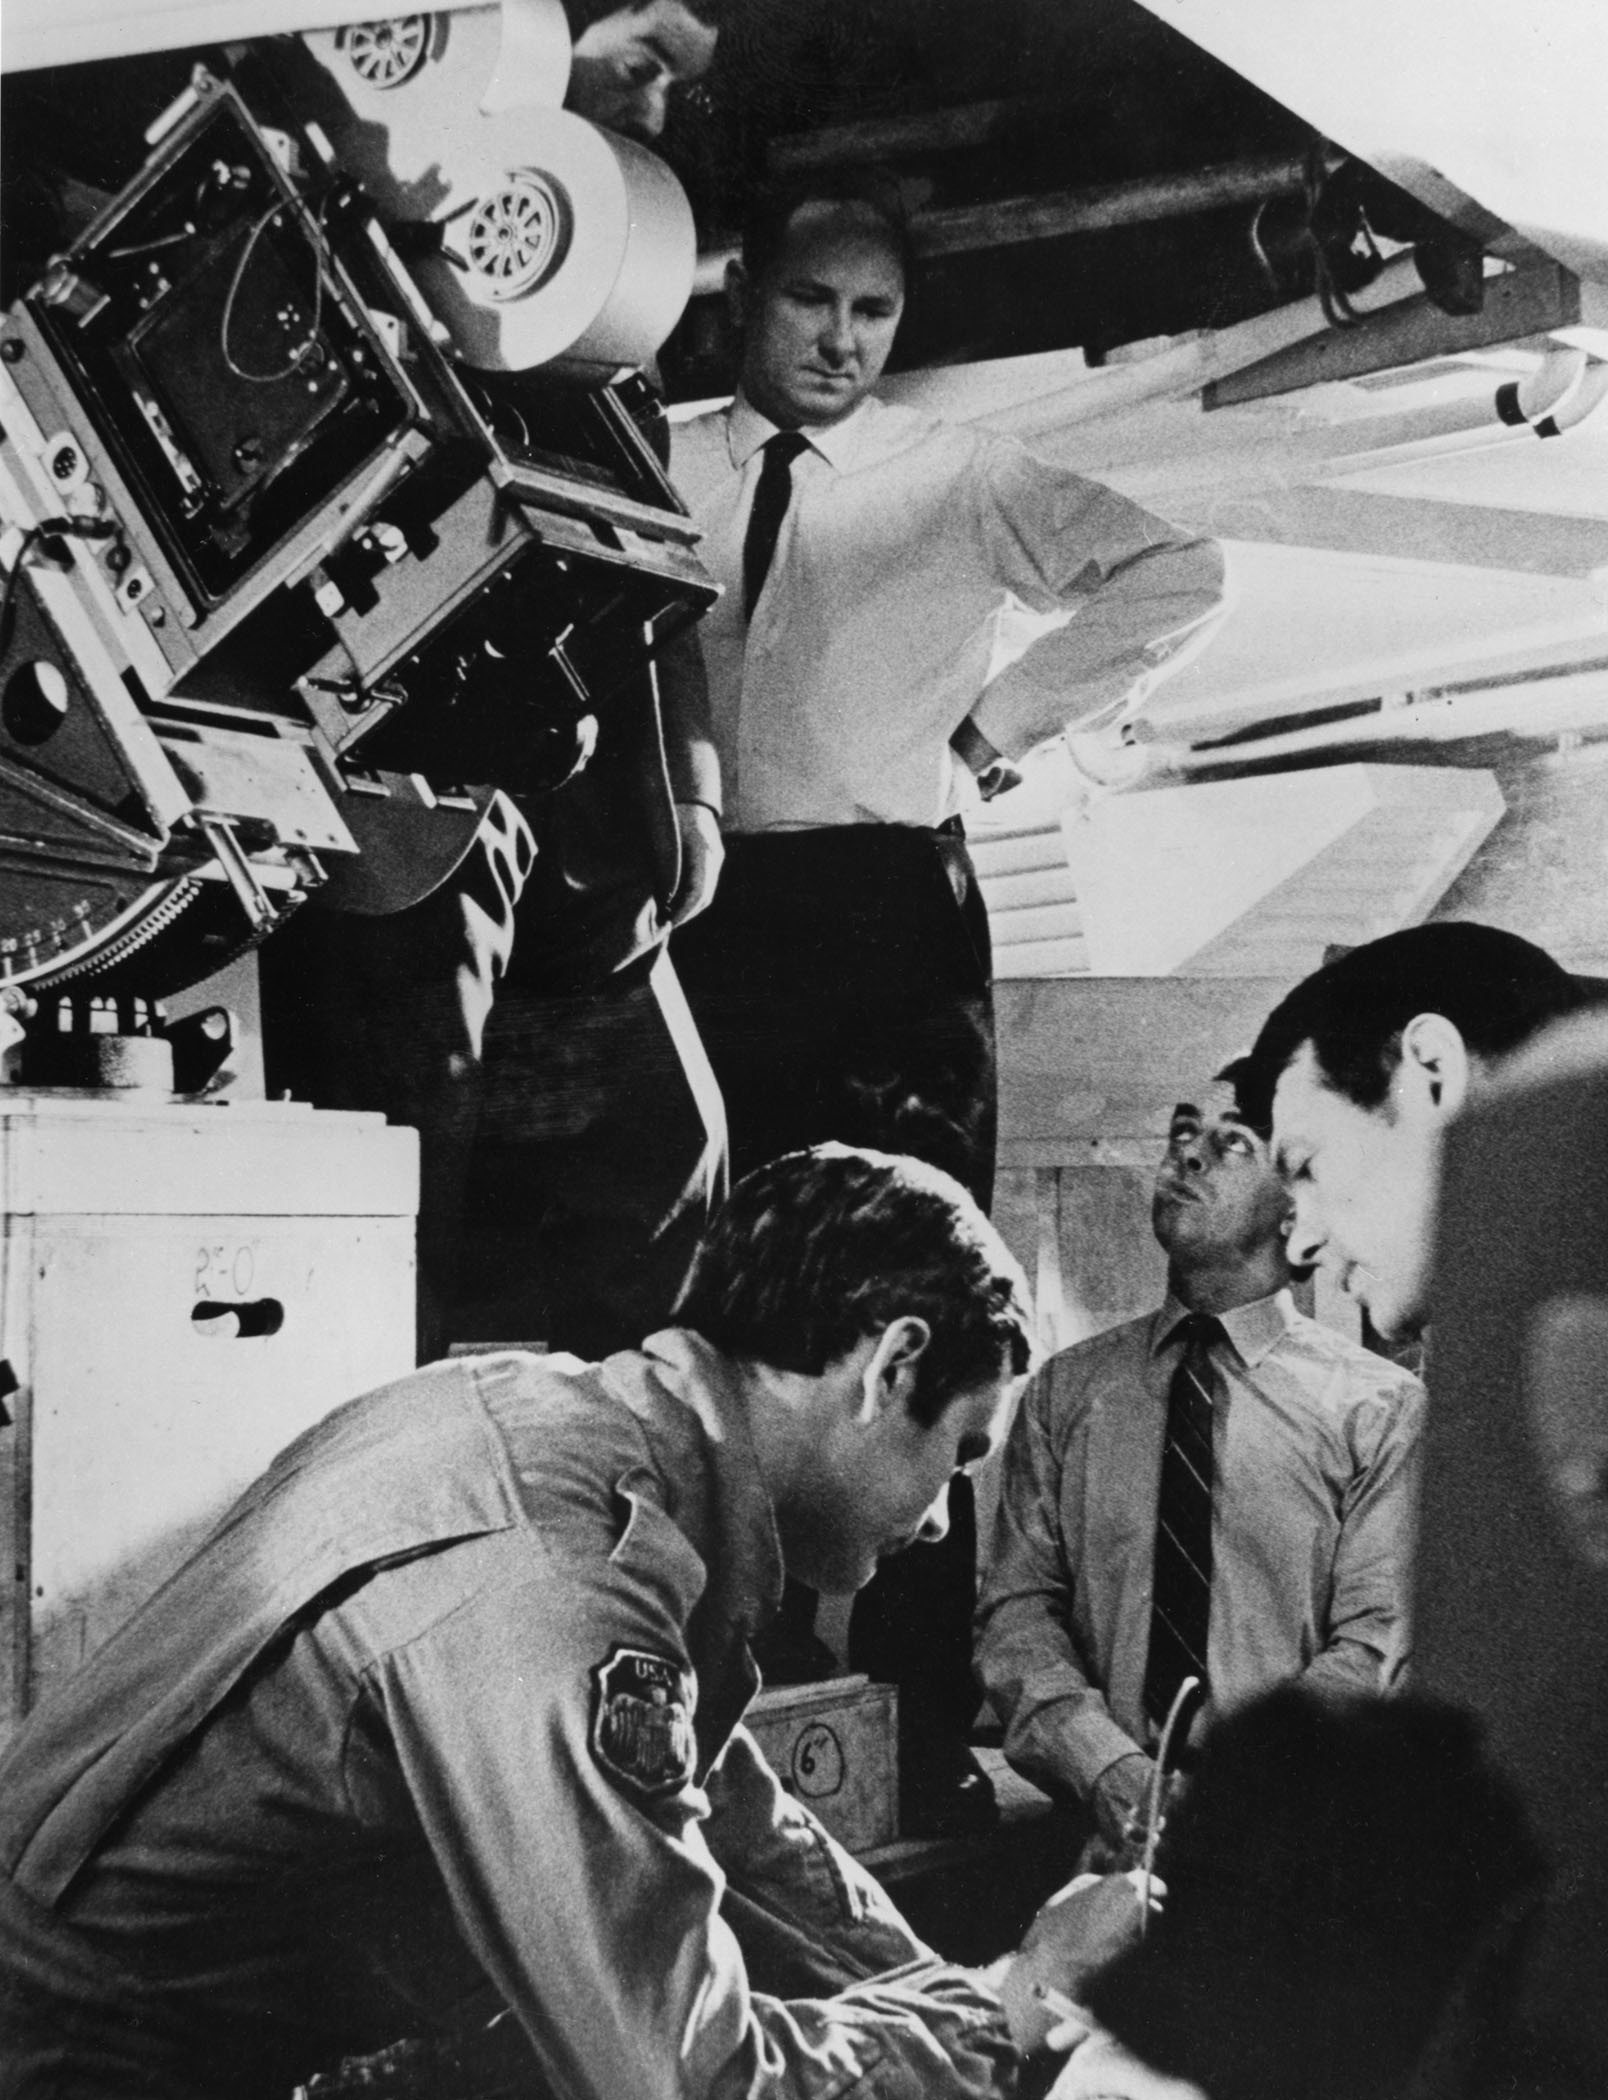 Filming 2001 A Space Odyssey The American Society Of Cinematographers Wiring Harness Kubrick Geoffrey Unsworth And John Alcott Prepare Shot On Actors Keir Dullea Gary Lockwood